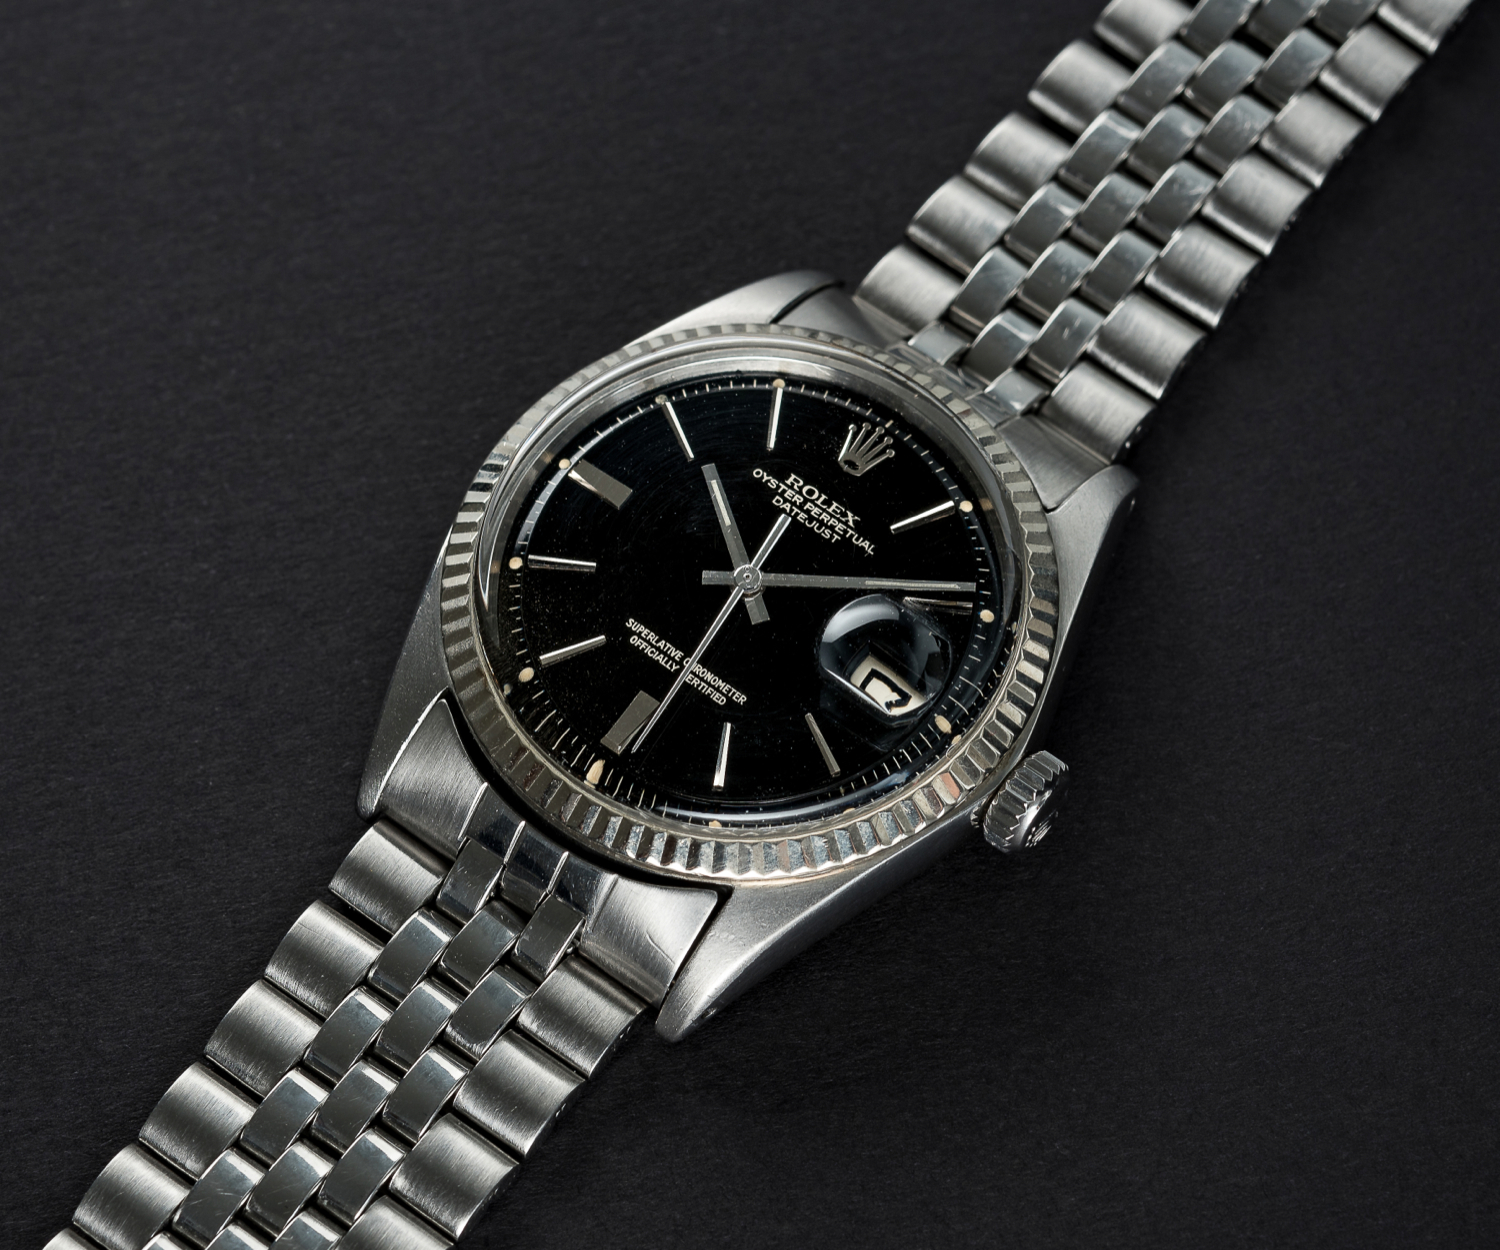 A RARE GENTLEMAN'S STEEL & WHITE GOLD ROLEX OYSTER PERPETUAL DATEJUST BRACELET WATCH CIRCA 1965, - Image 2 of 13